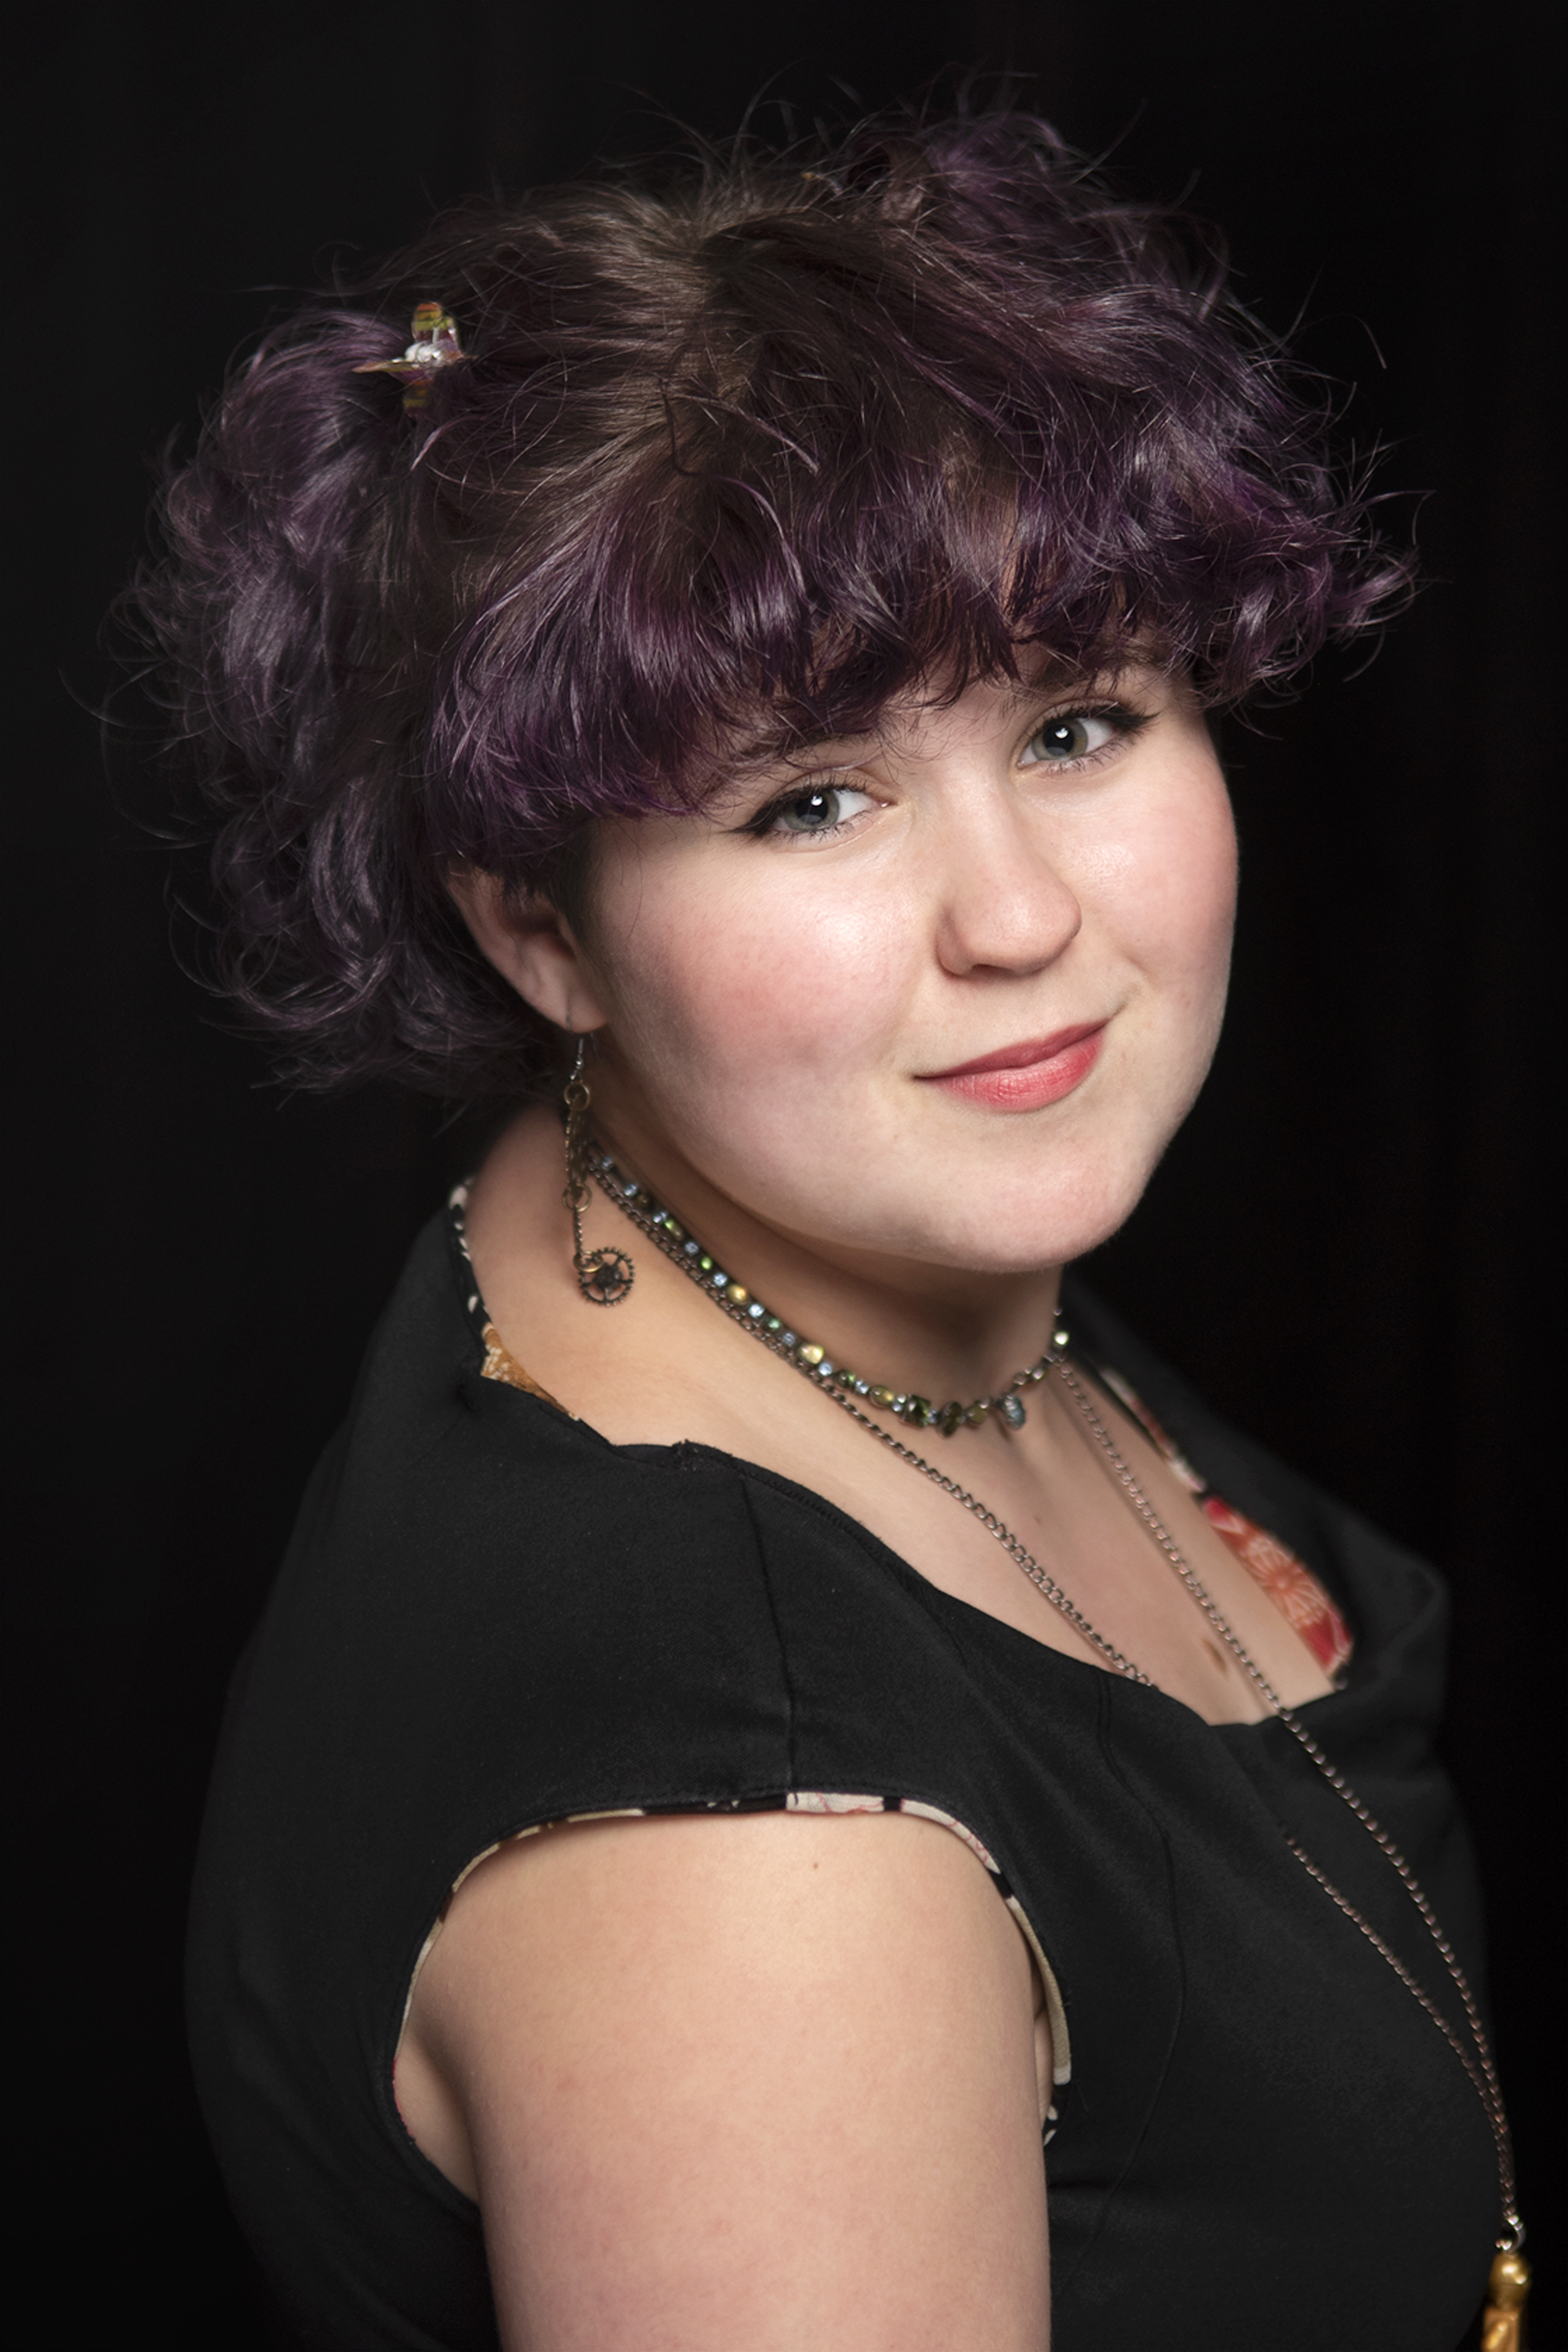 Actor Headshot for Spring Theatre, located in Winston-Salem, North Carolina | Photographed by Jasper & Fern | Winston-Salem photographer | Traditional Headshots | Actress Headshots | Thespian headshot | All black headshot backdrop | purple hair style | short curly hair style